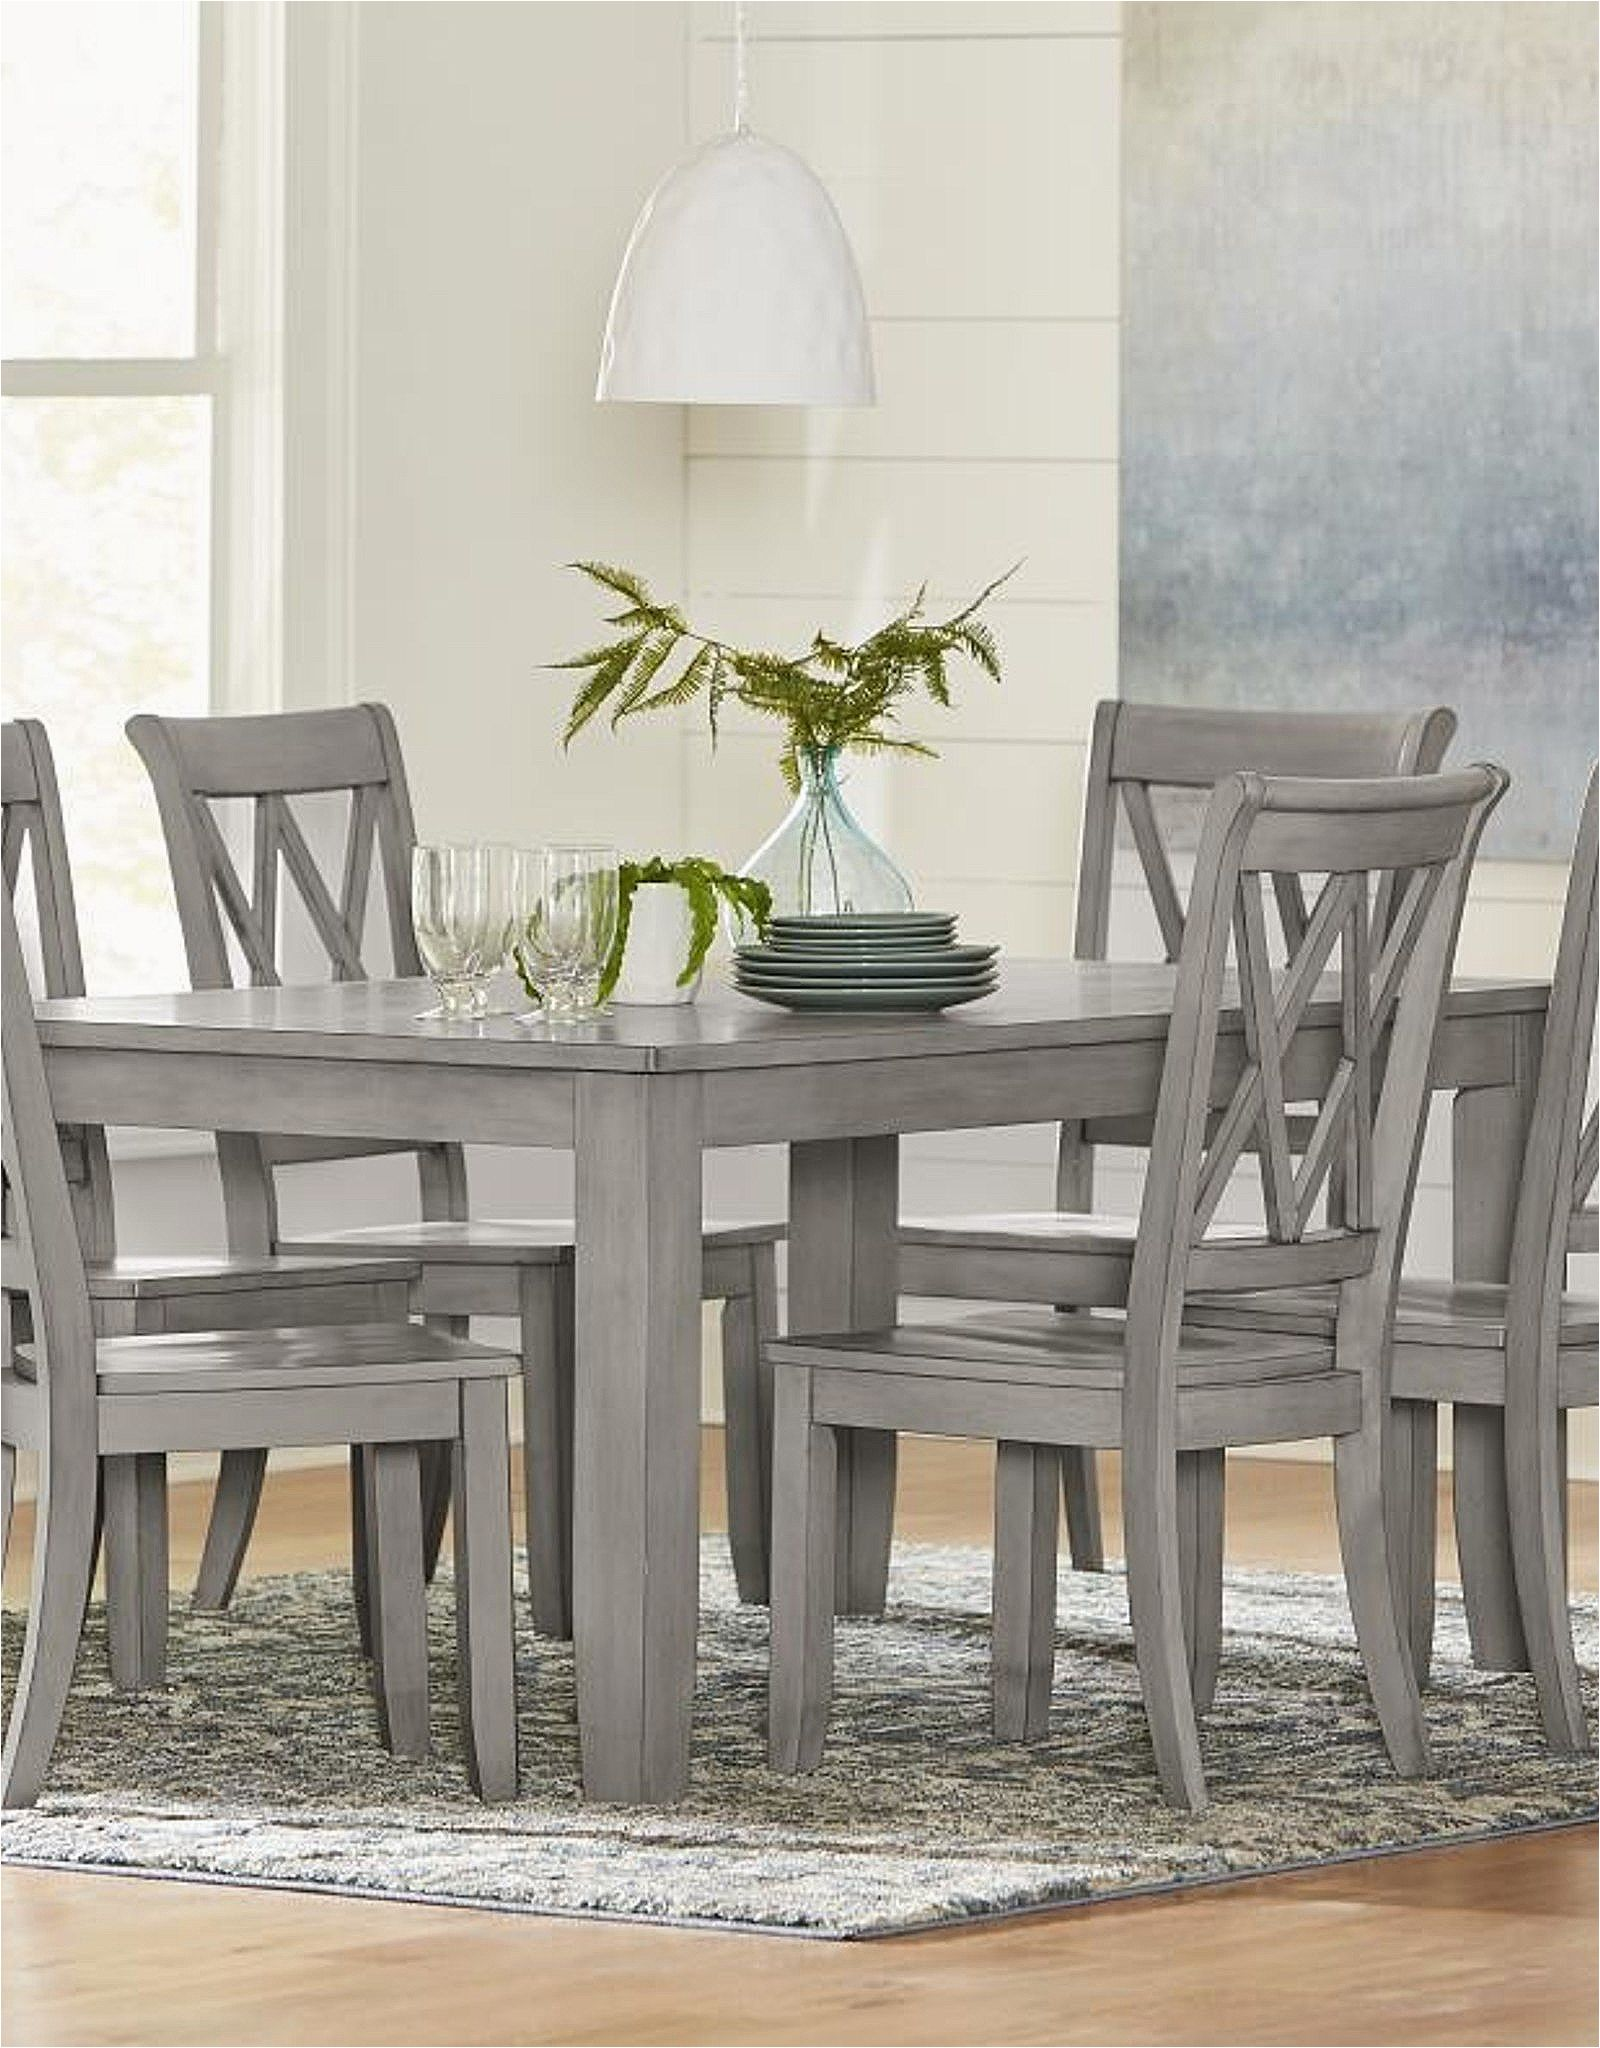 Gray Dining Table With Chairs Dining Table Chairs Grey Dining Room Table Grey Dining Room